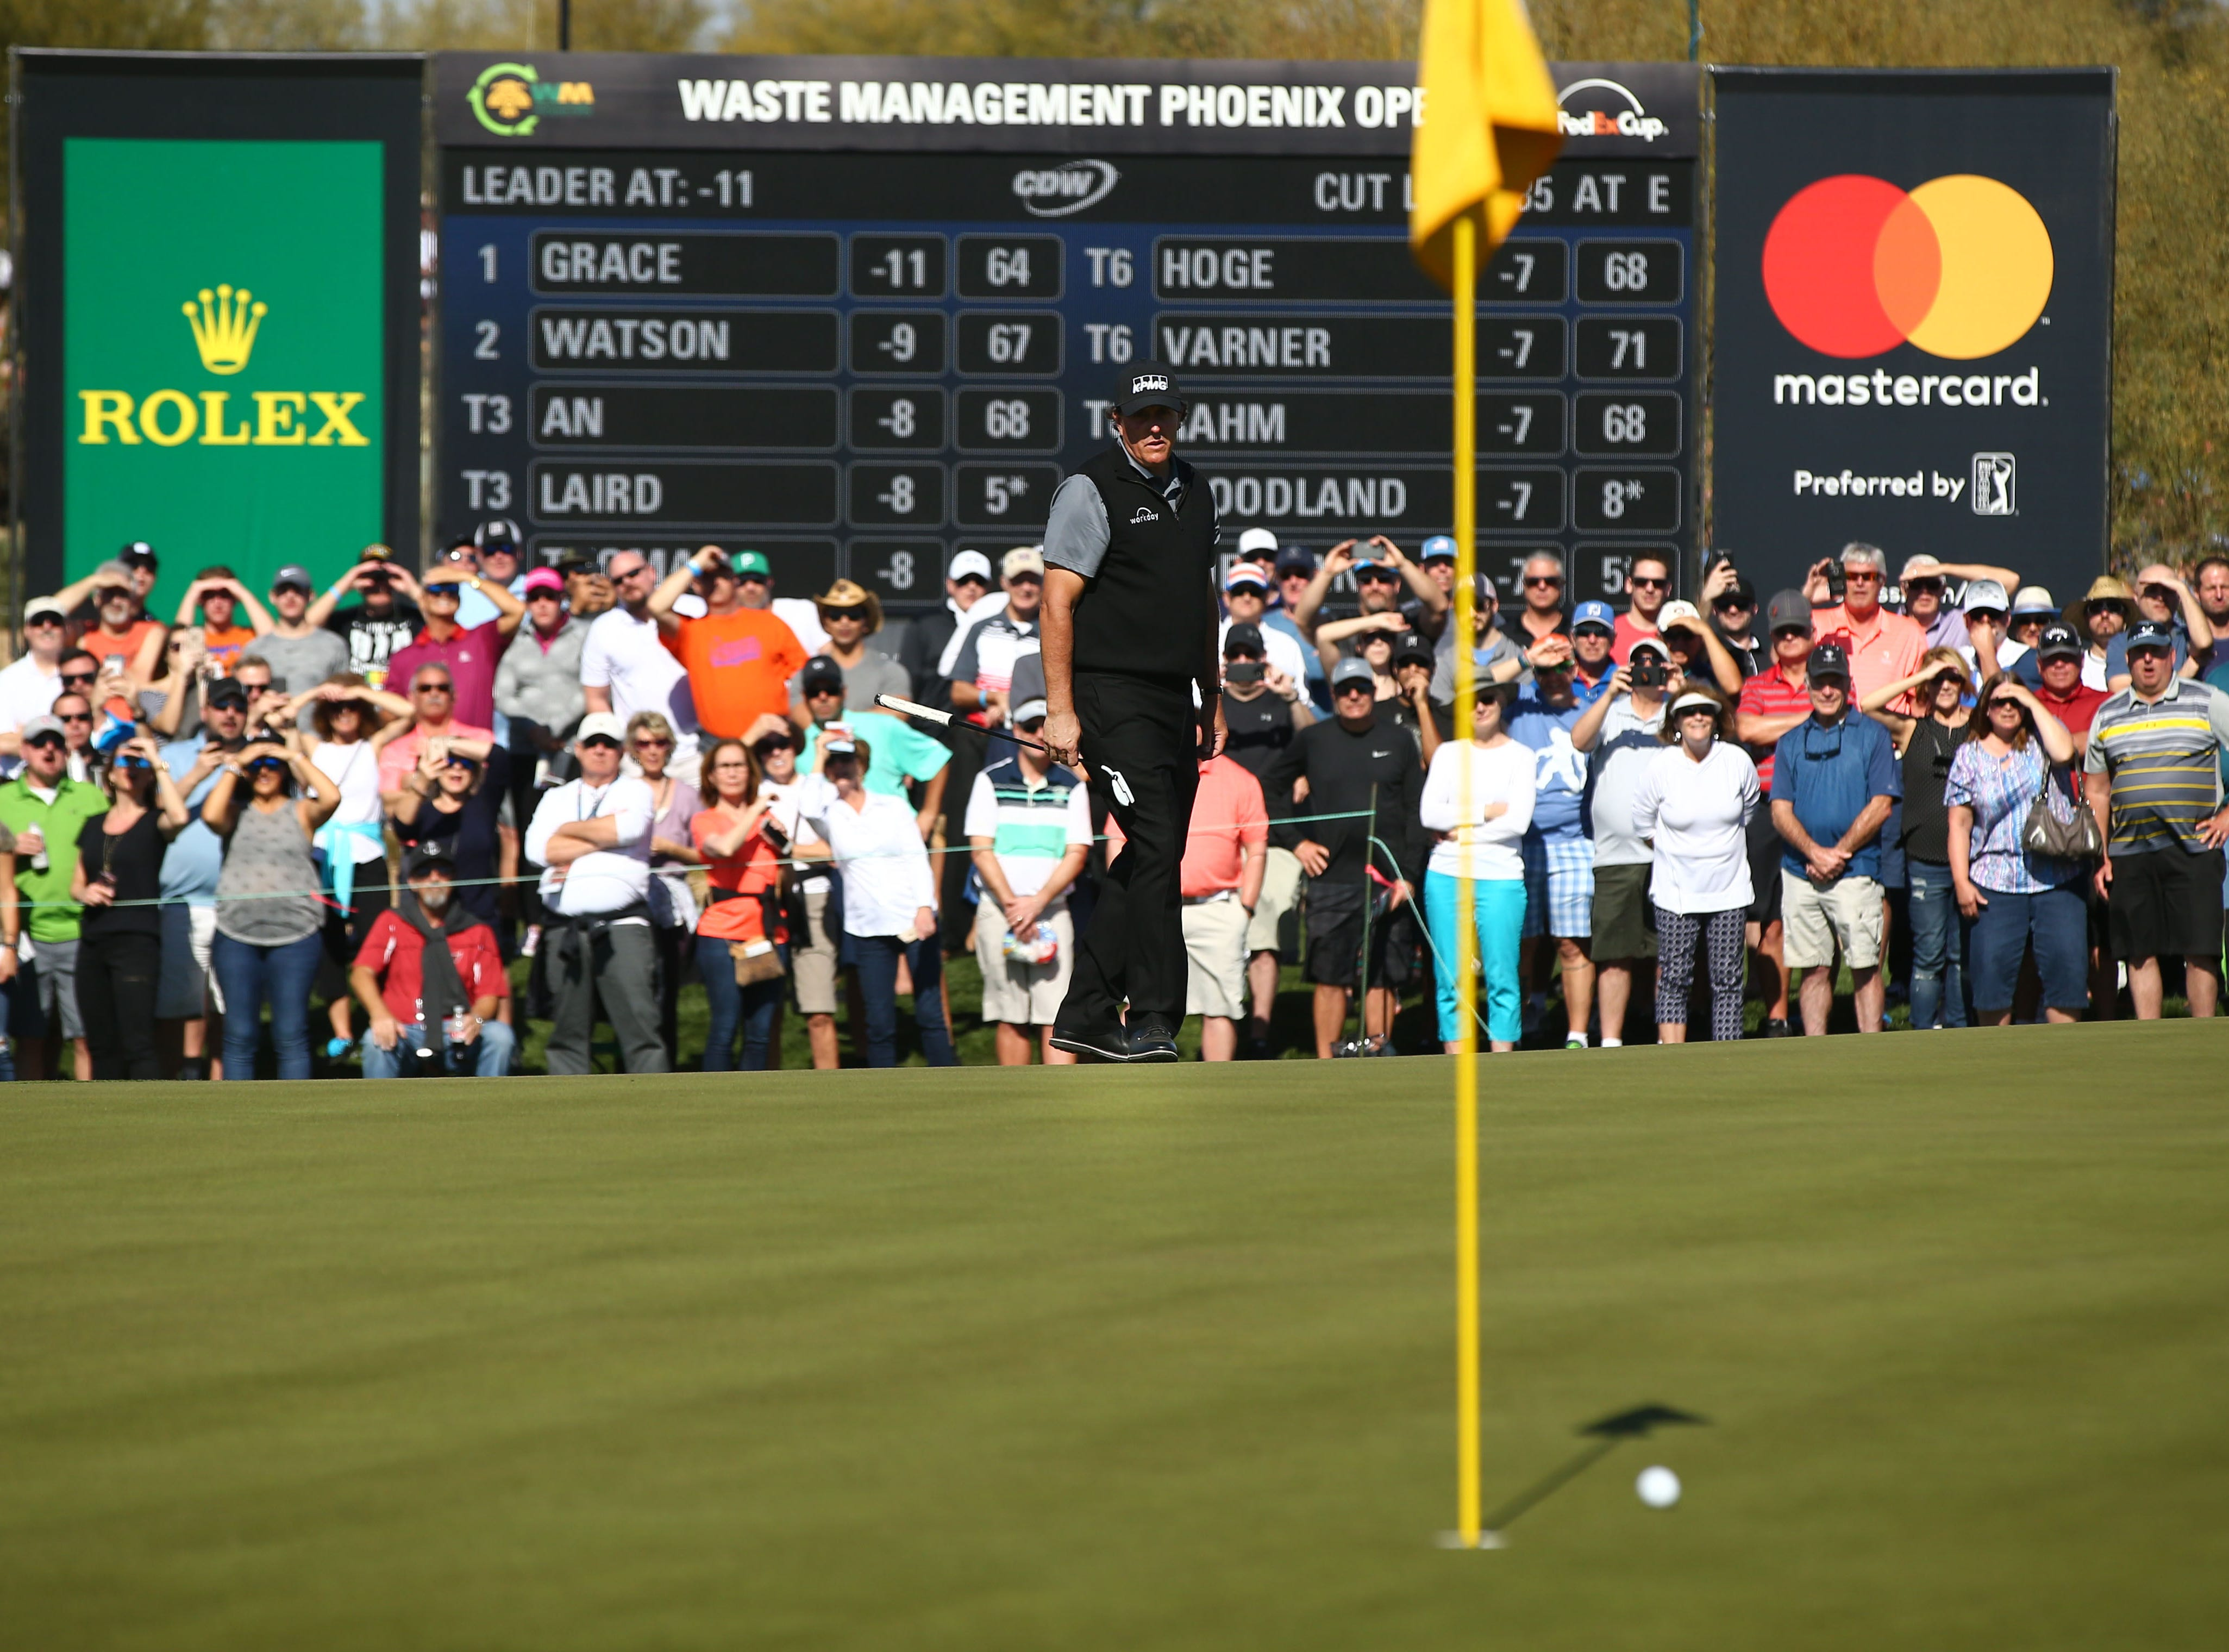 Phil Mickelson saves par on the 9th hole during second round action on Feb. 1 during the Waste Management Phoenix Open at the TPC Scottsdale Stadium Course.